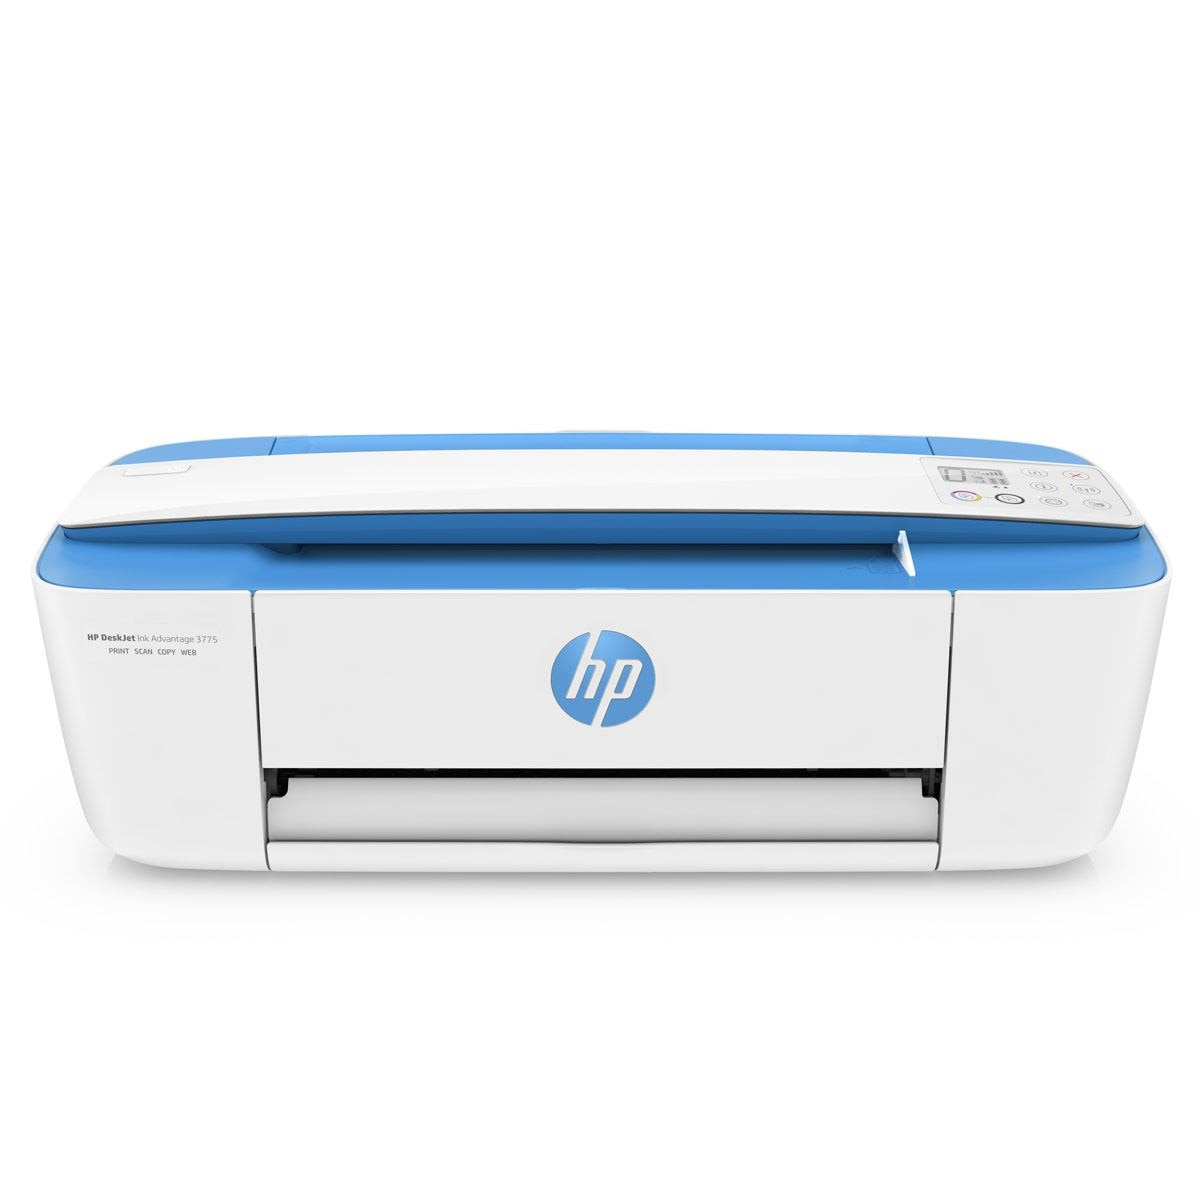 Impresora HP Ink Advantage 3775